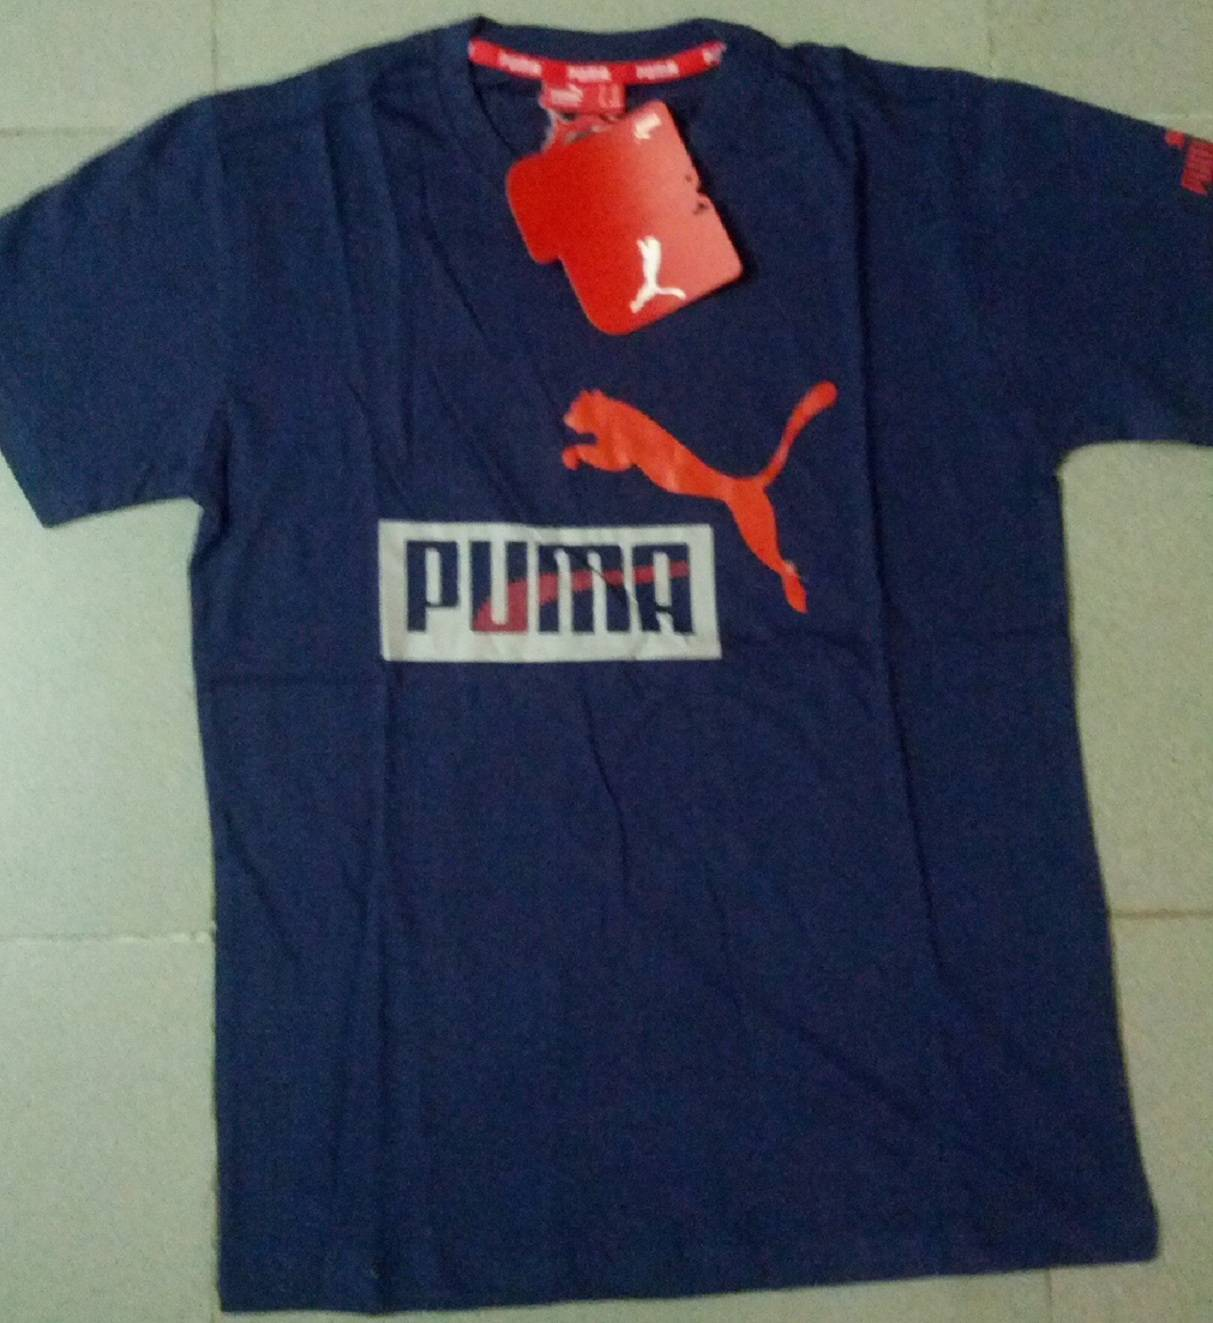 Best quality T-shirt @ competitive price